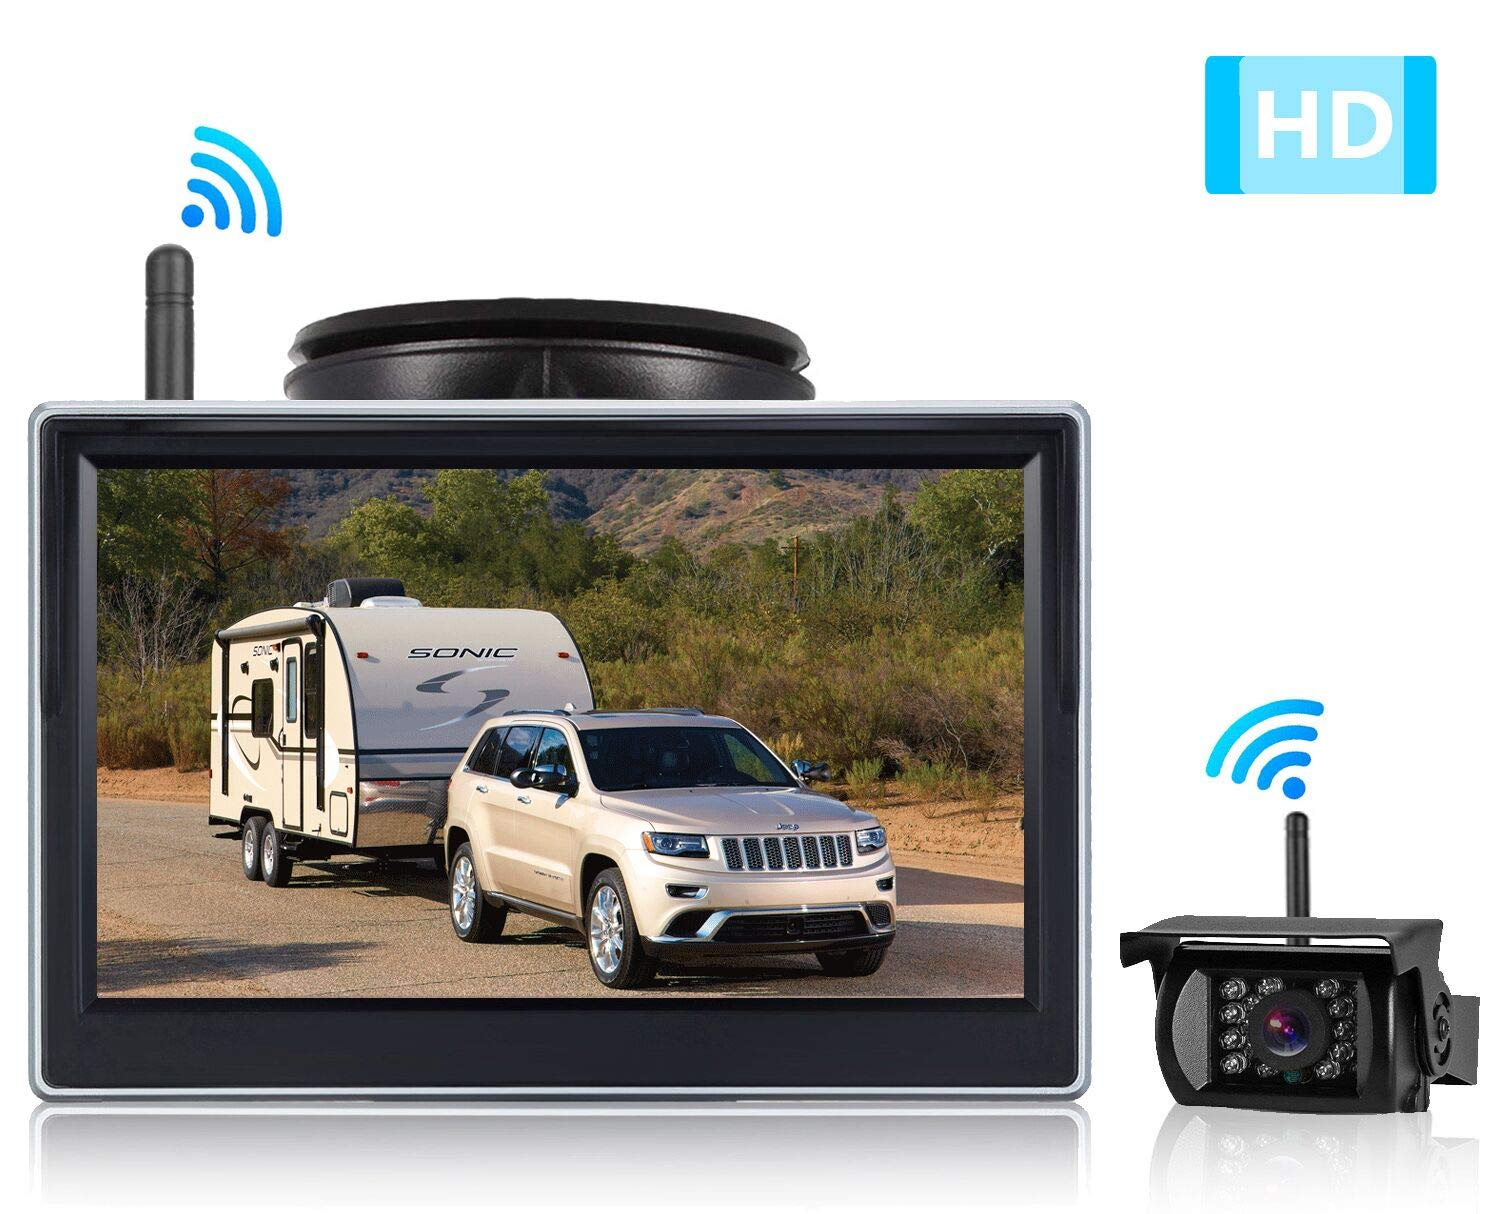 Emmako HD Digital Wireless Backup Camera System with 5'' Monitor for Cars,Pickups,Trucks,RVs,Trailers,Rear/Front View Camera,Guide Lines On/Off,Ip69 Waterproof